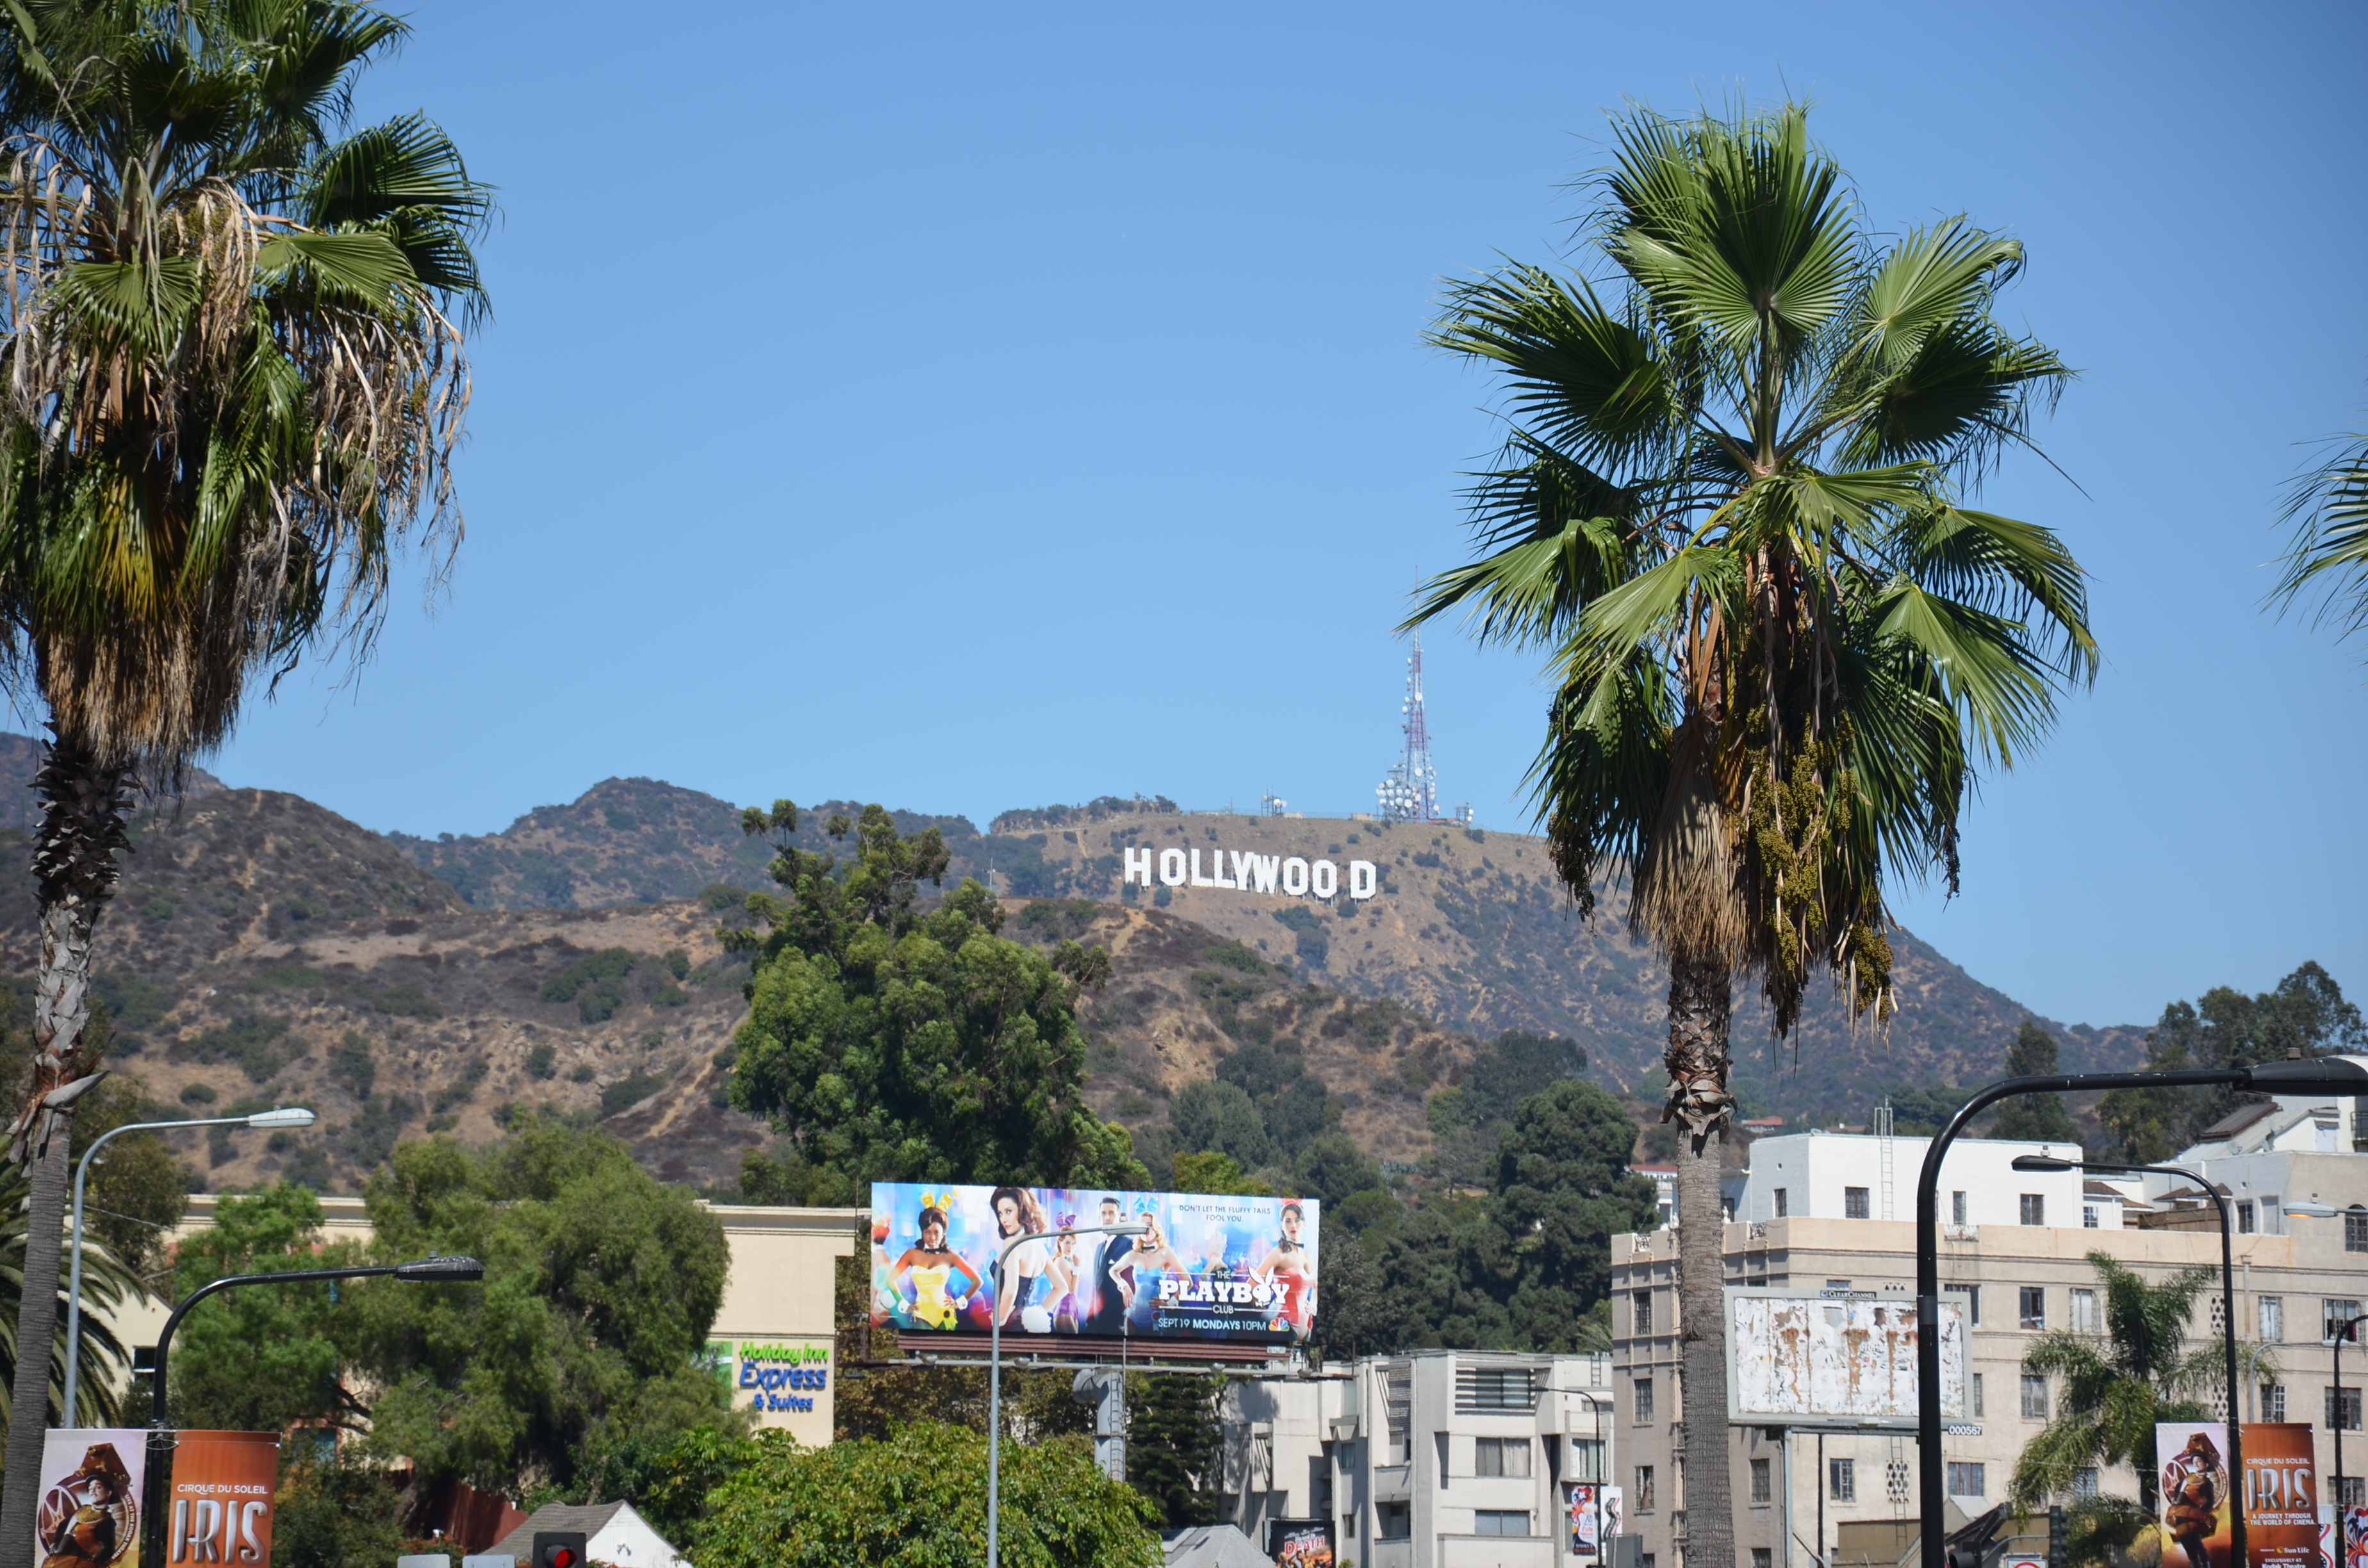 Hollywood Hills Without Sign Images Pictures   Becuo 3696x2448